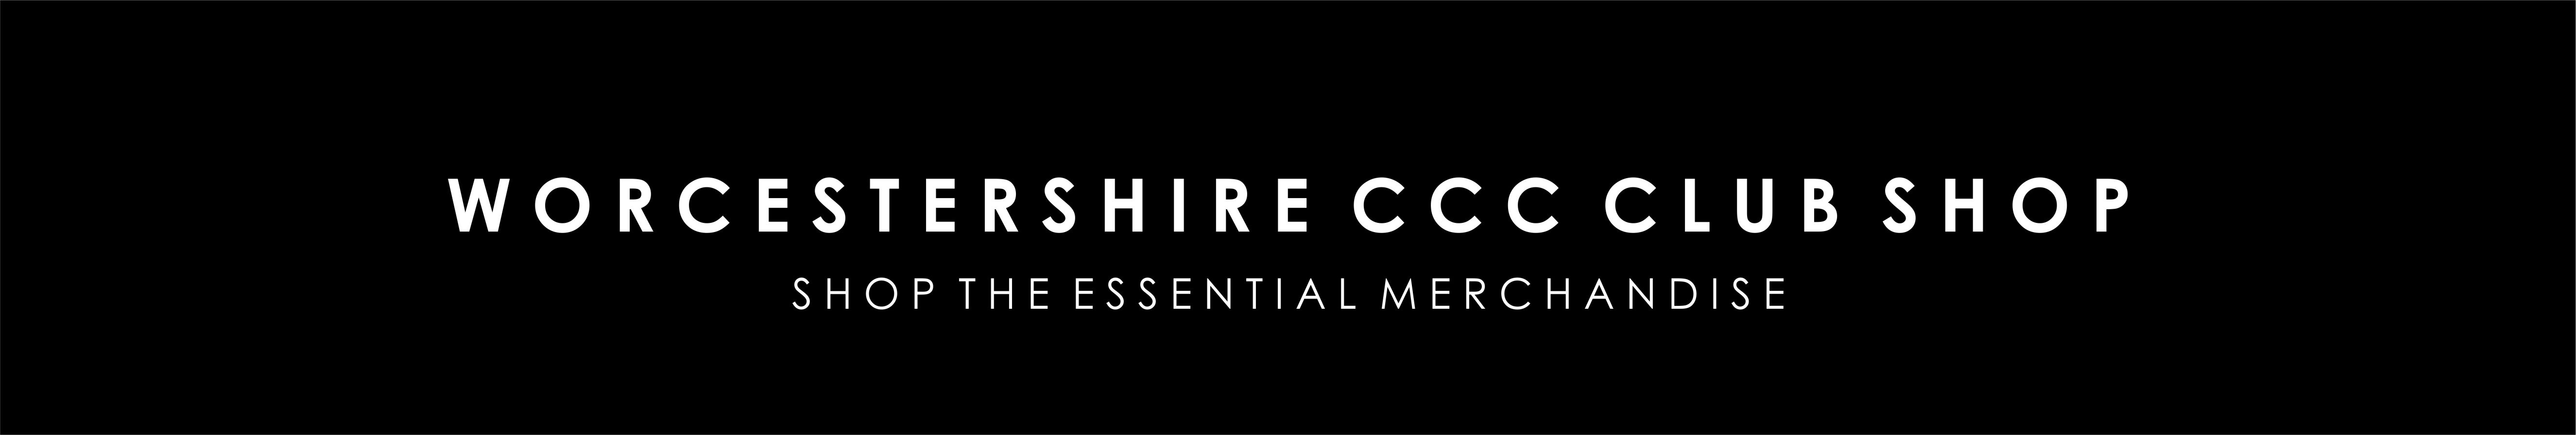 worcestershire-ccc-club-shop-front-banner.jpg